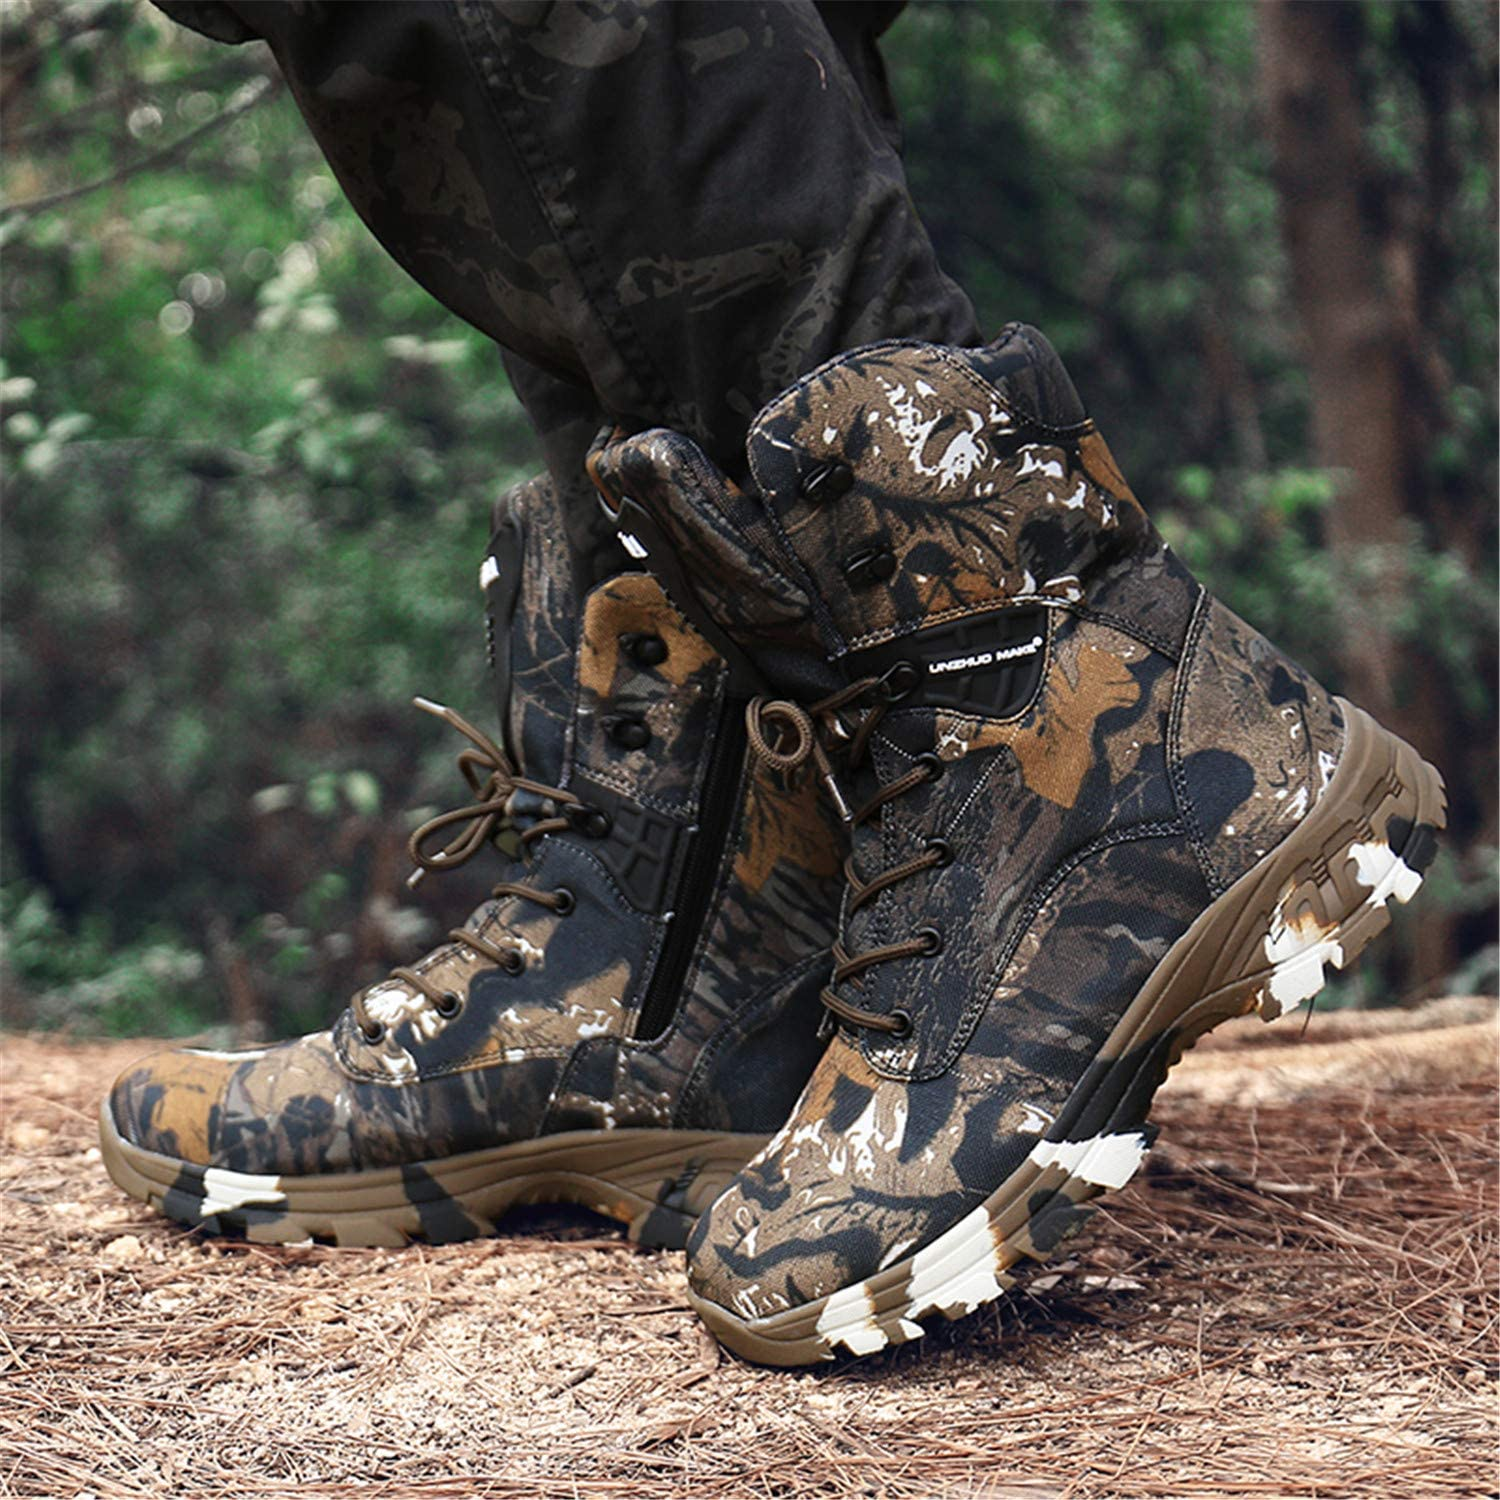 PULUSI Men Lightweight Leather Combat Hiking Army Shoes, Tactical Booties, Waterproof Military Ankle Boots Brown jfZQO